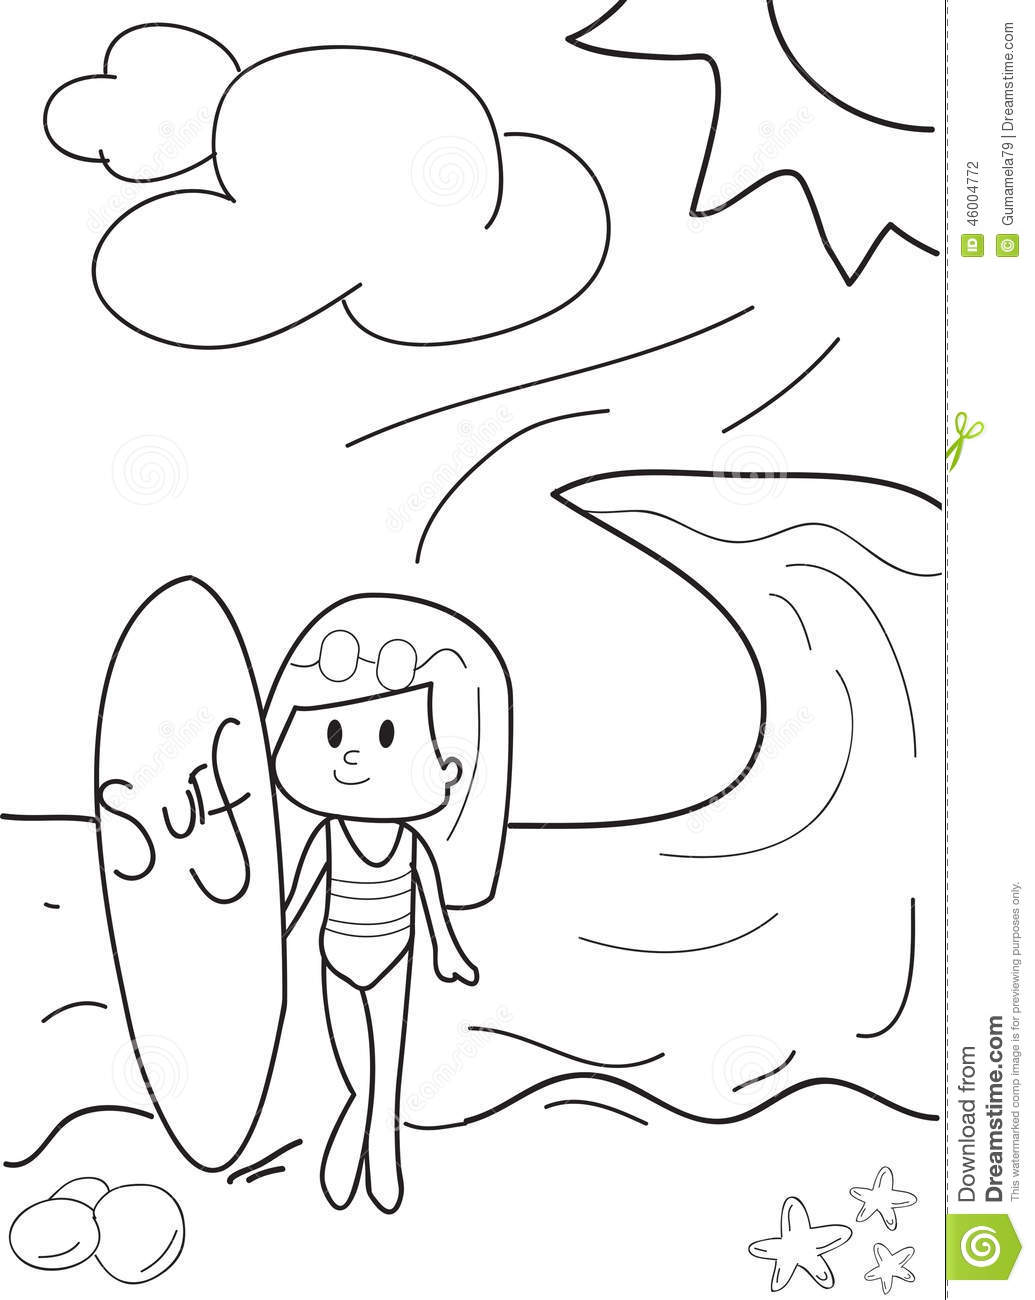 surfing girl coloring pages - photo#14